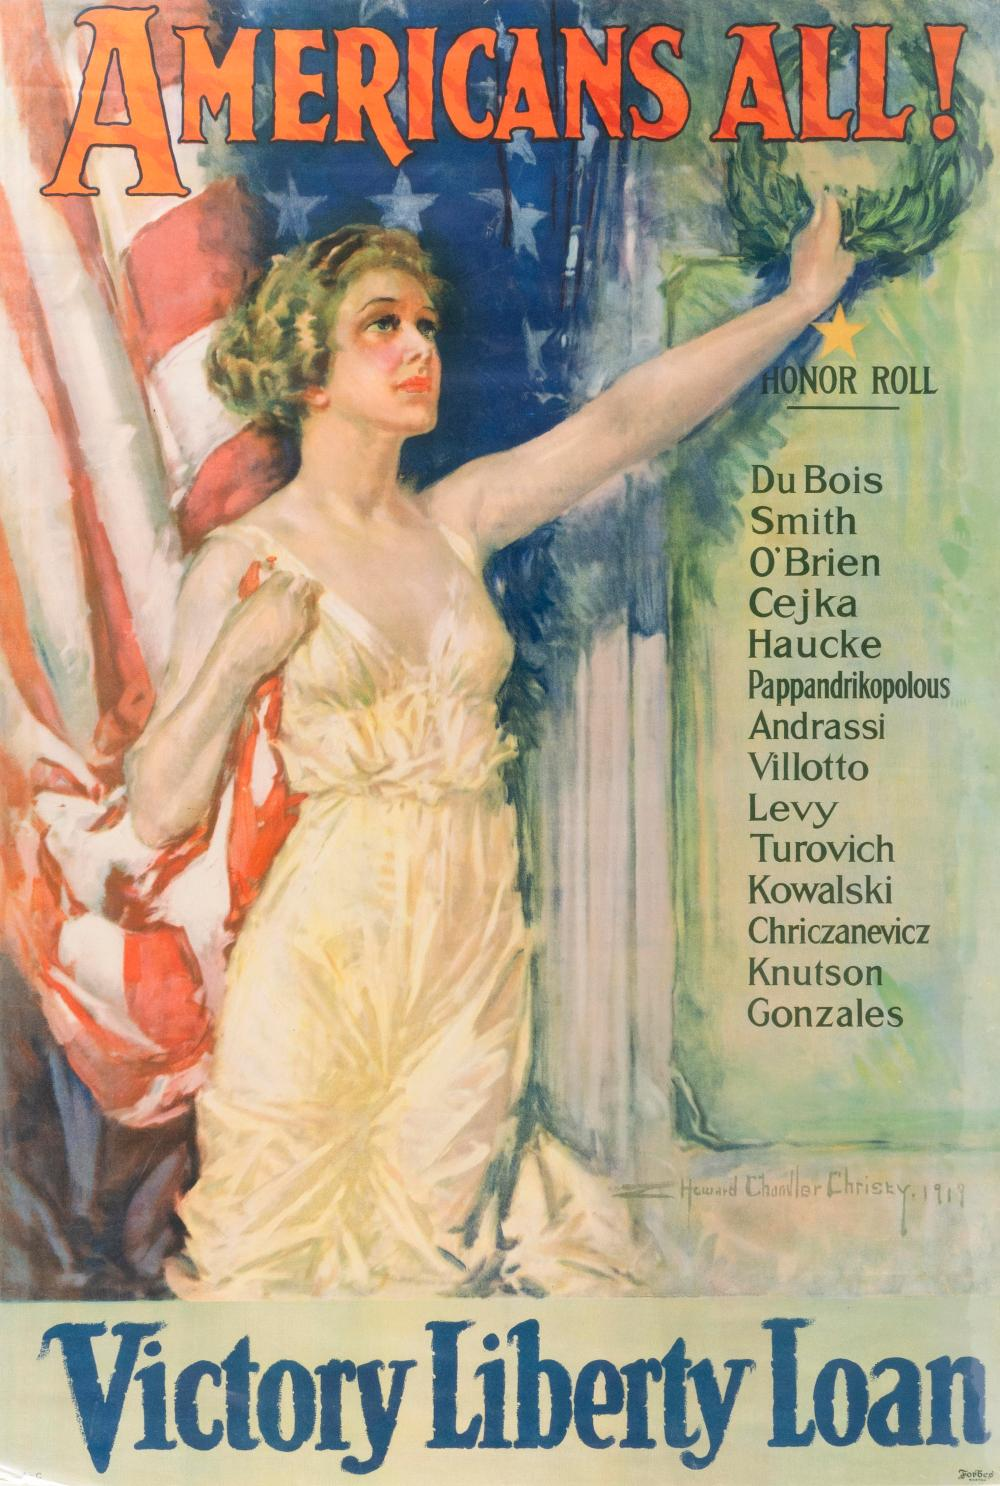 """""""AMERICANS ALL!"""" WORLD WAR I POSTER By Howard Chandler Christy for the Victory Liberty Loan, published by Forbes, Boston. Depicts an..."""